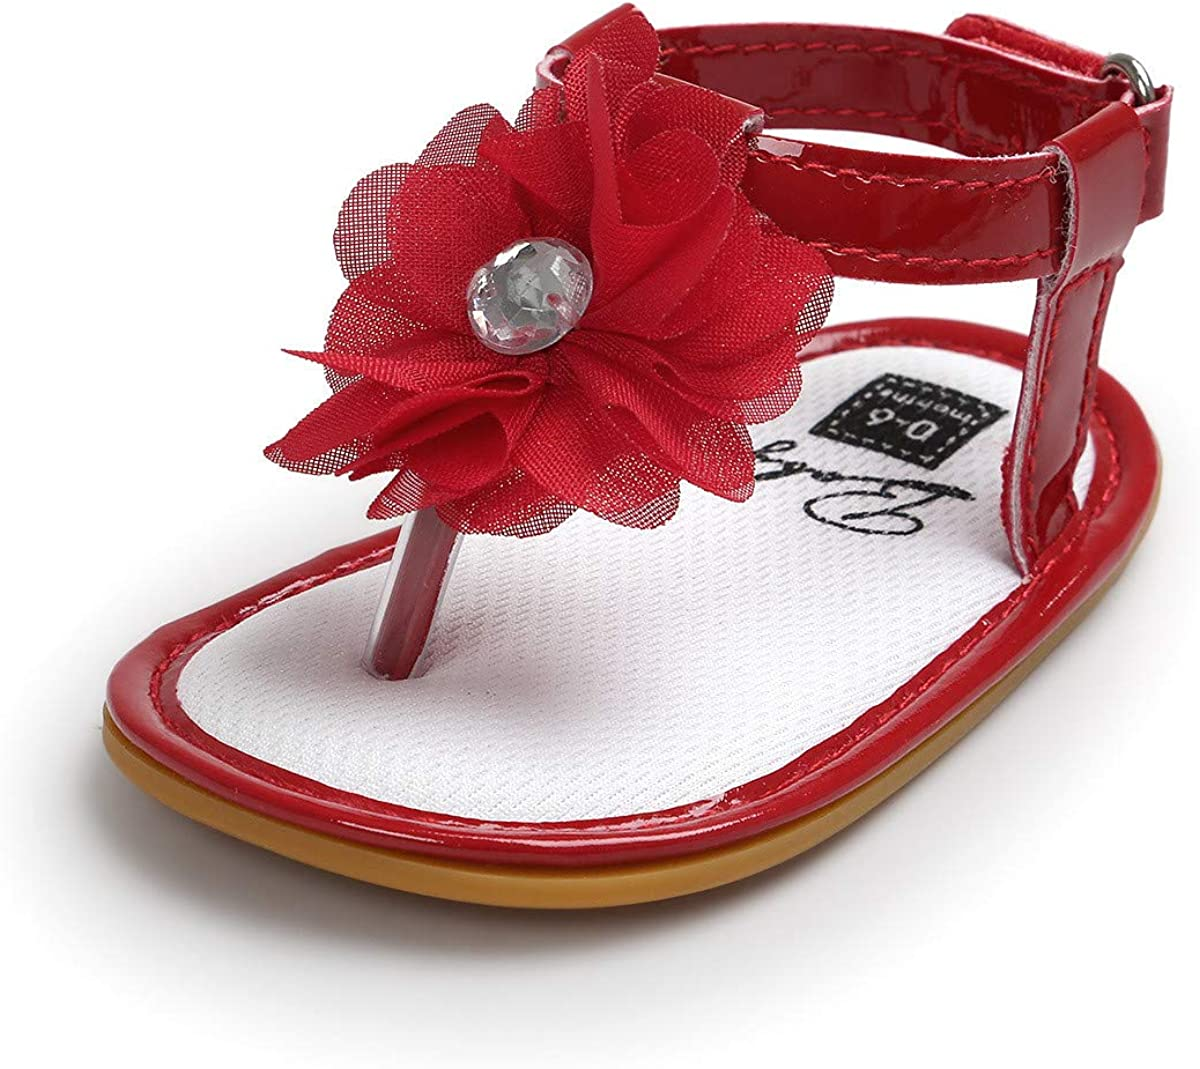 New item COSANKIM Infant Baby Girls Summer with Sole Cheap bargain Sandals Flower Soft